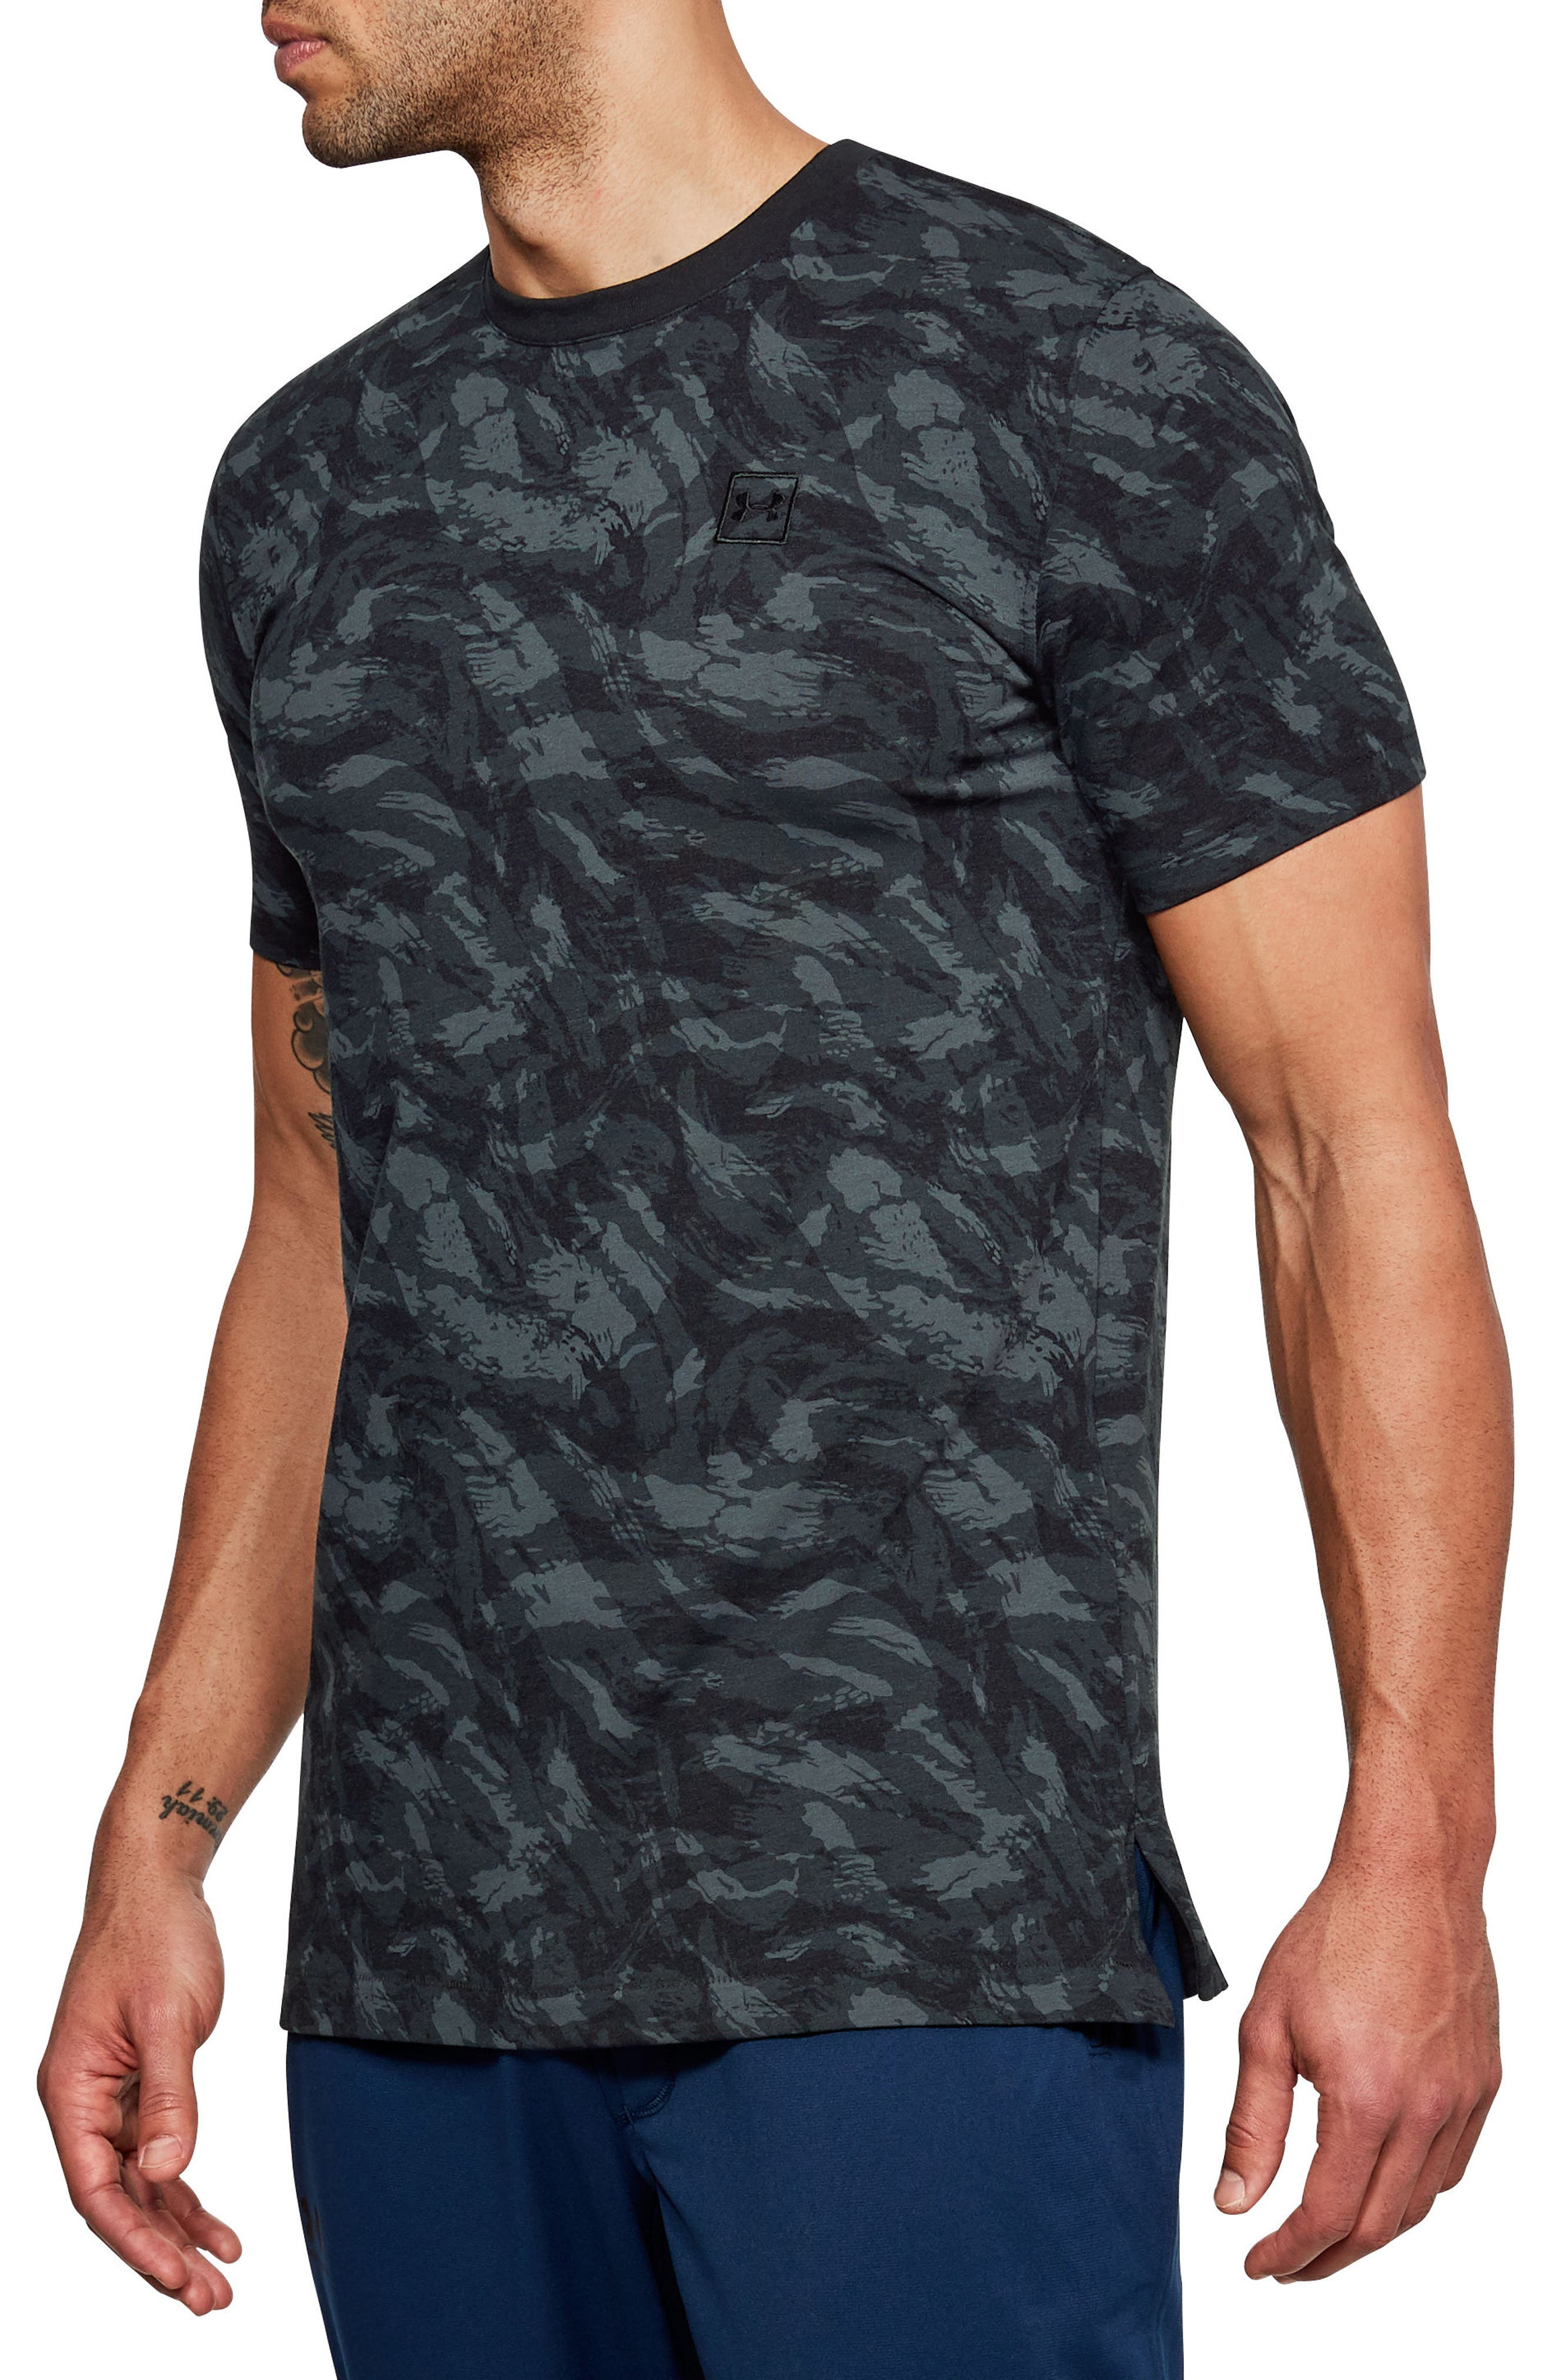 Sportstyle Print Charged Cotton<sup>®</sup> Fitted T-Shirt,                         Main,                         color, Black/ Black